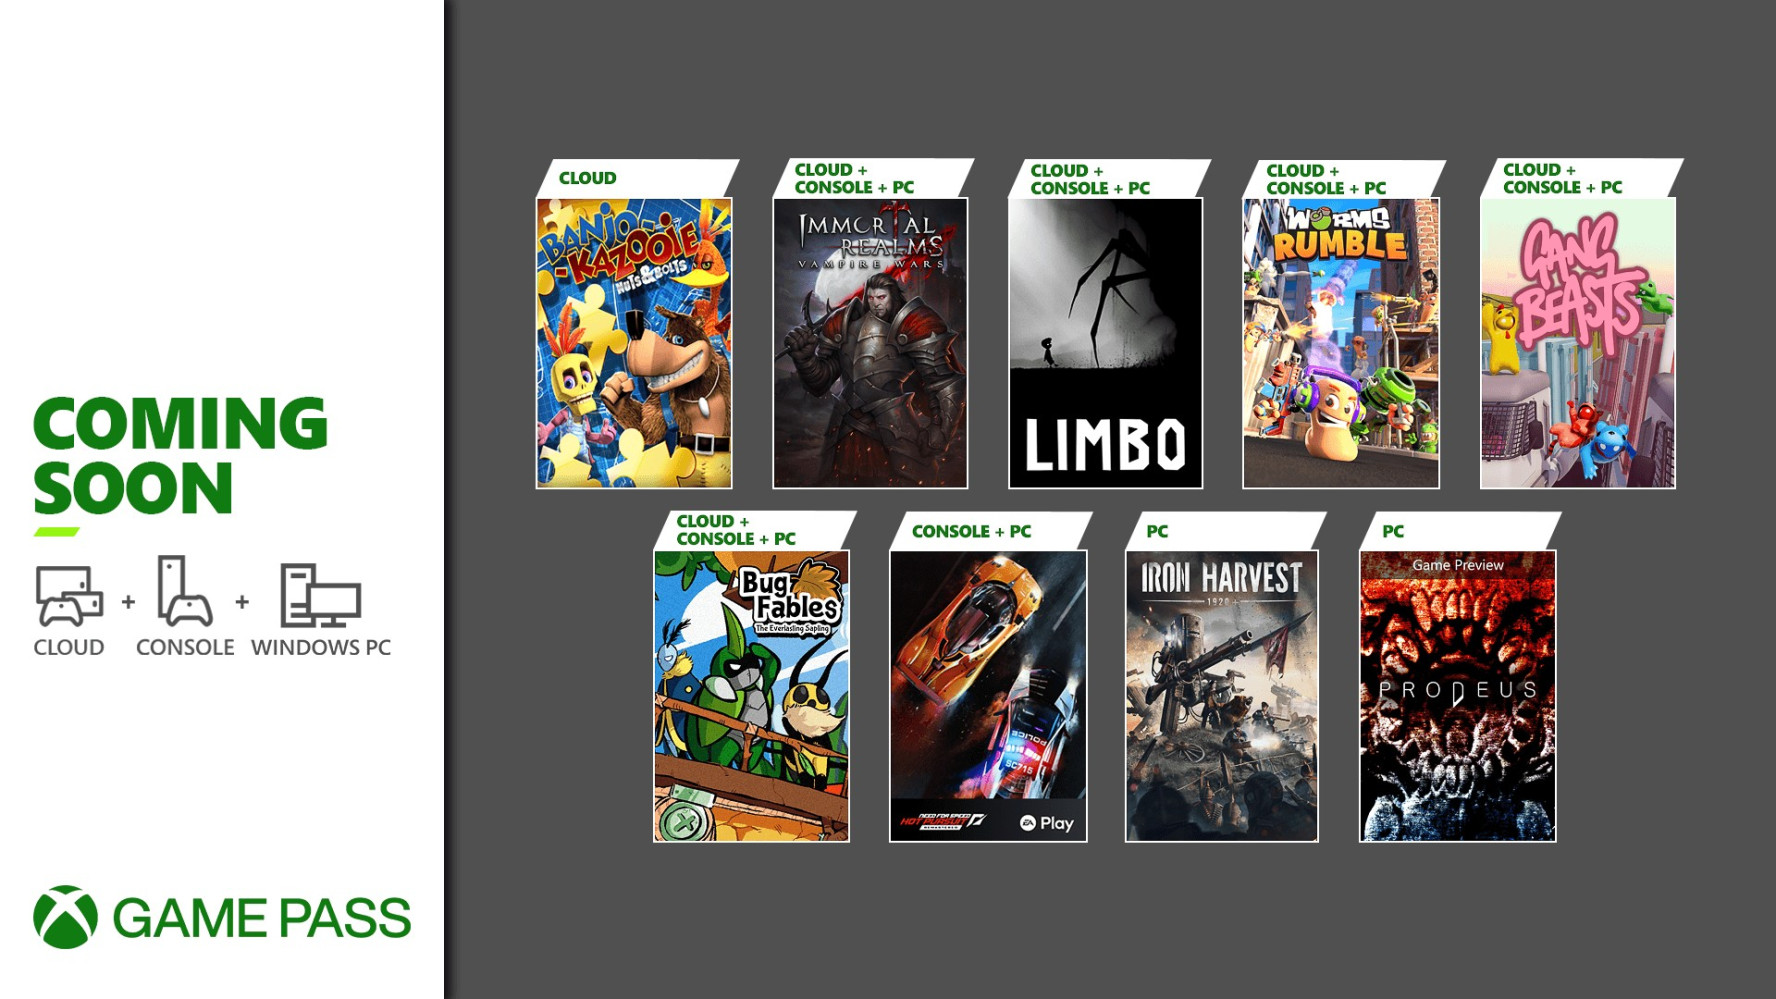 Xbox Game Pass gets Need for Speed Hot Pursuit, Limbo, and more